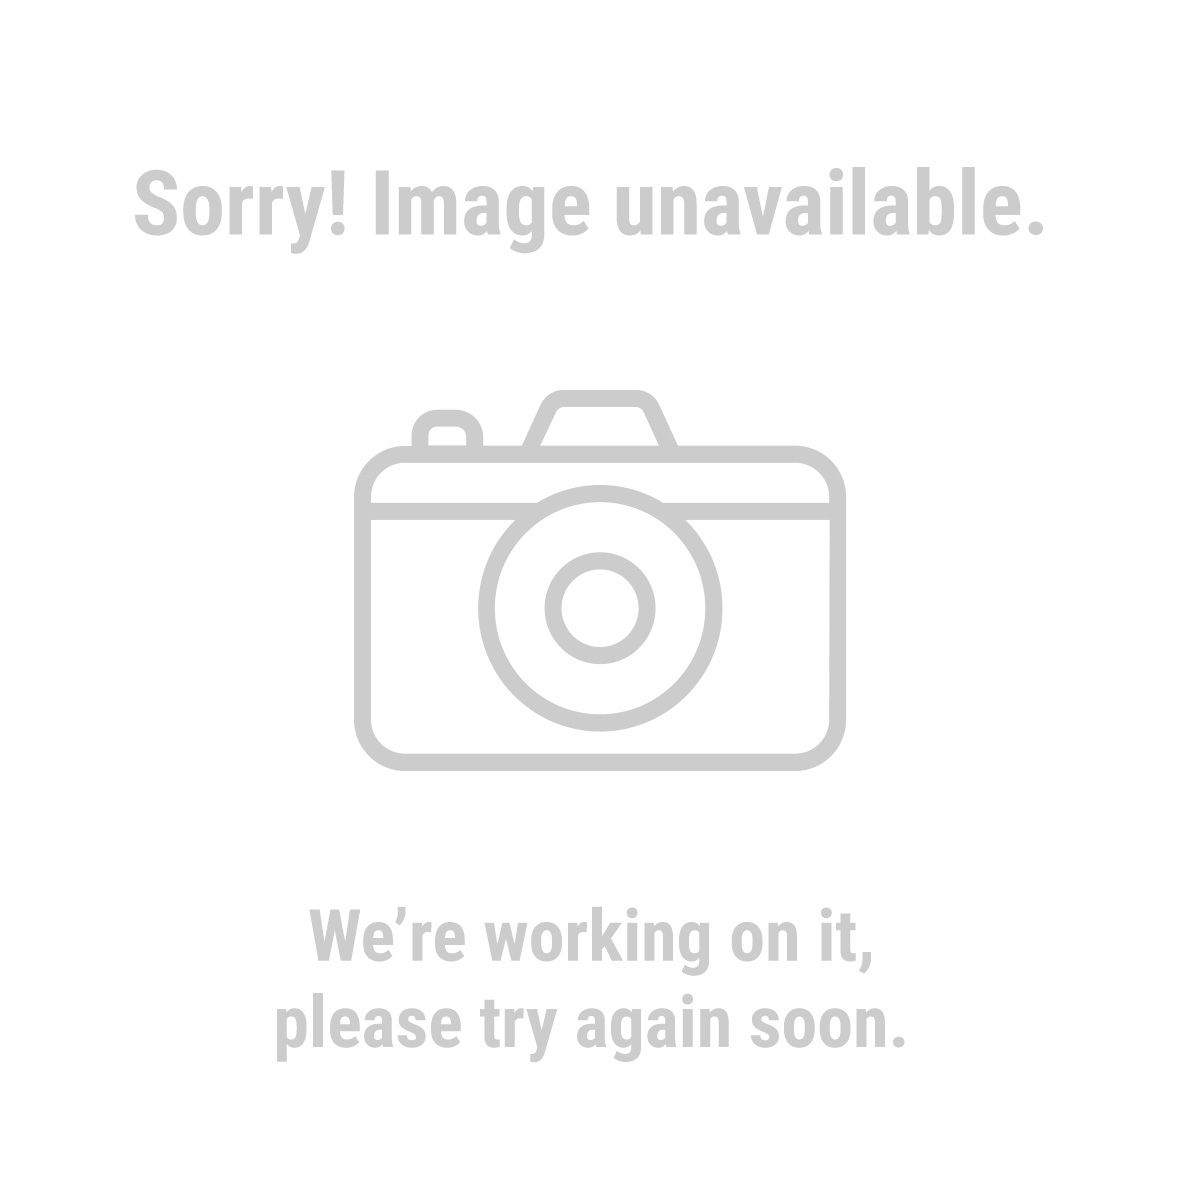 Warrior 61561 2 in, 3 in. Fiber Disc Sanding Kit